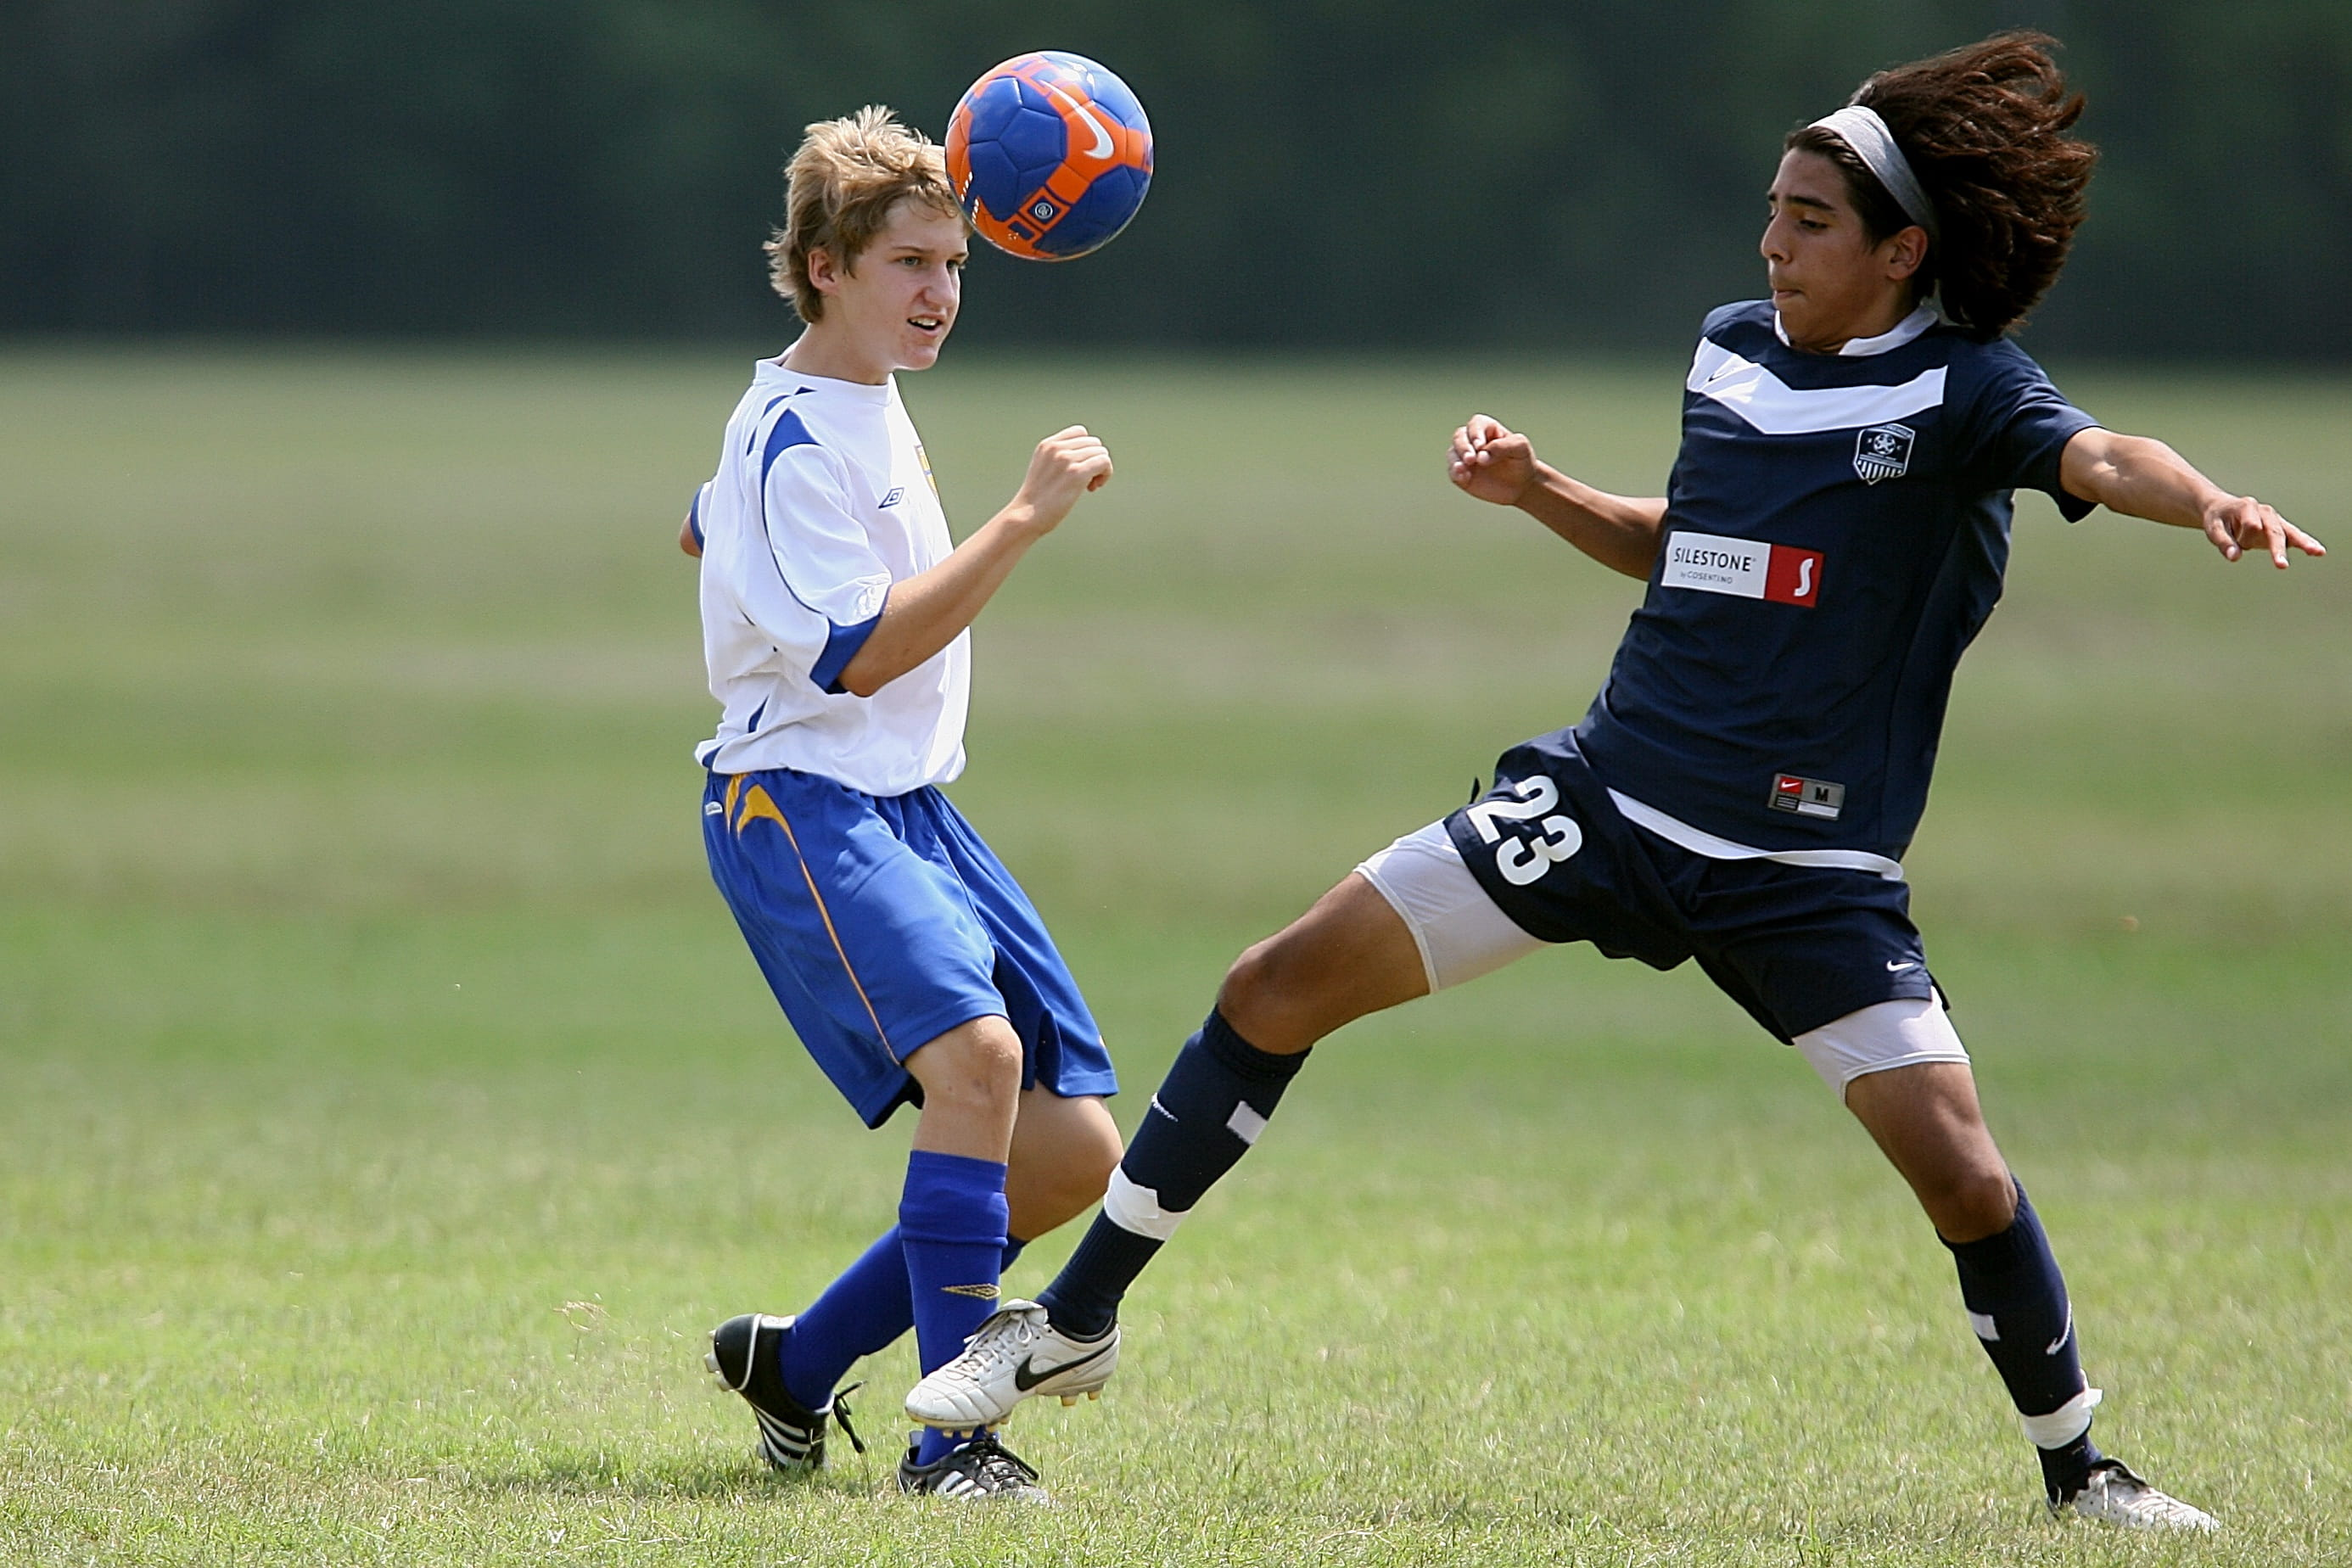 Two teenagers playing football